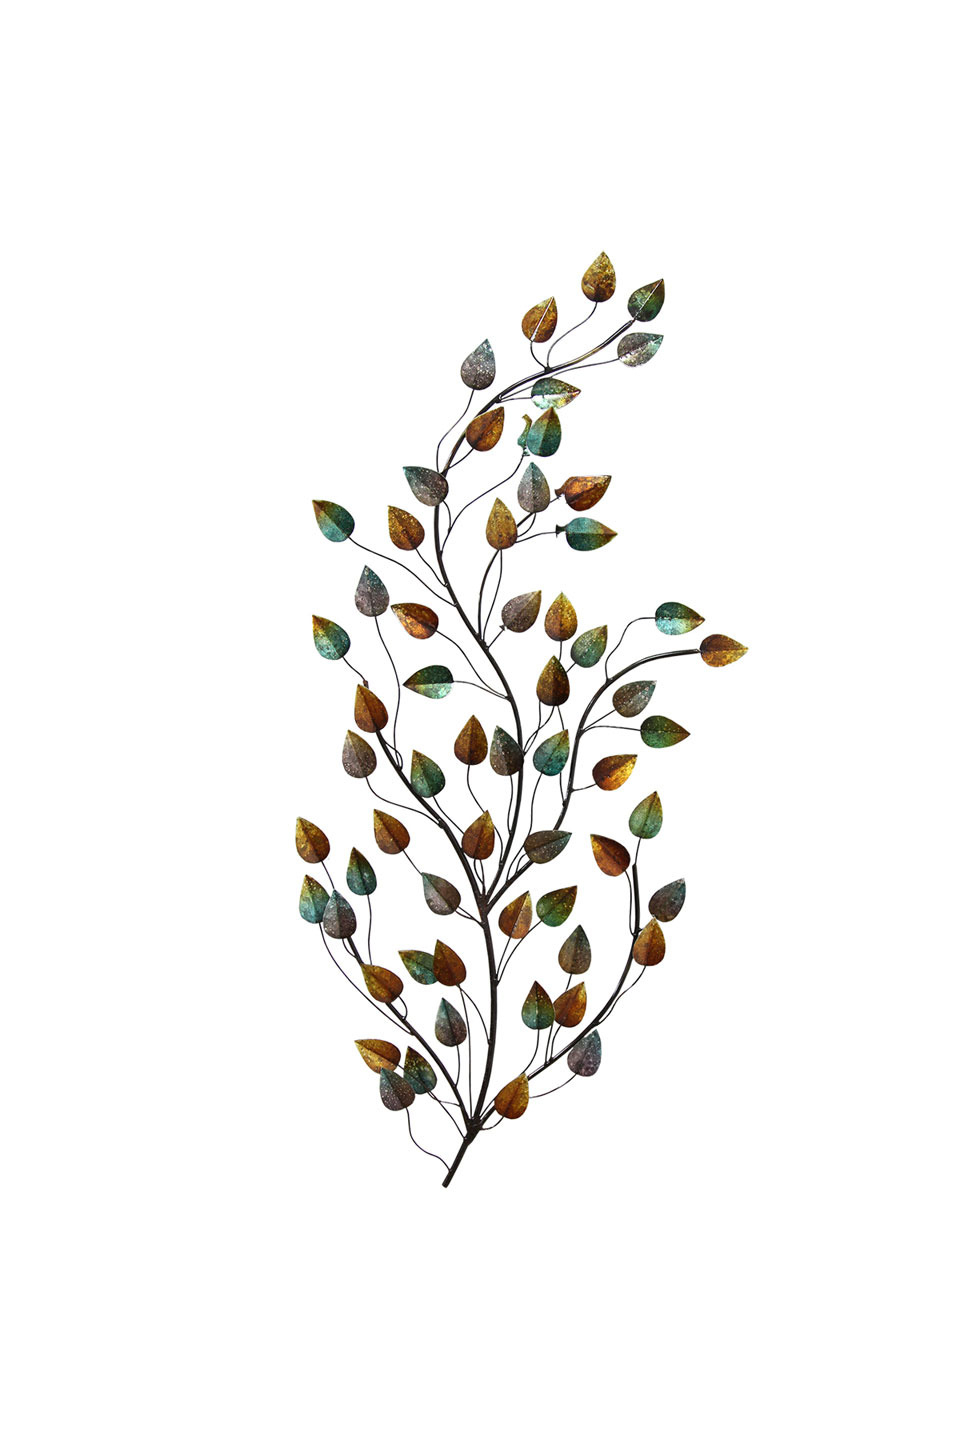 Stratton Home Décor Grand Blowing Leaves Wall Decor In Multi Inside Latest Blowing Leaves Wall Decor (View 18 of 20)